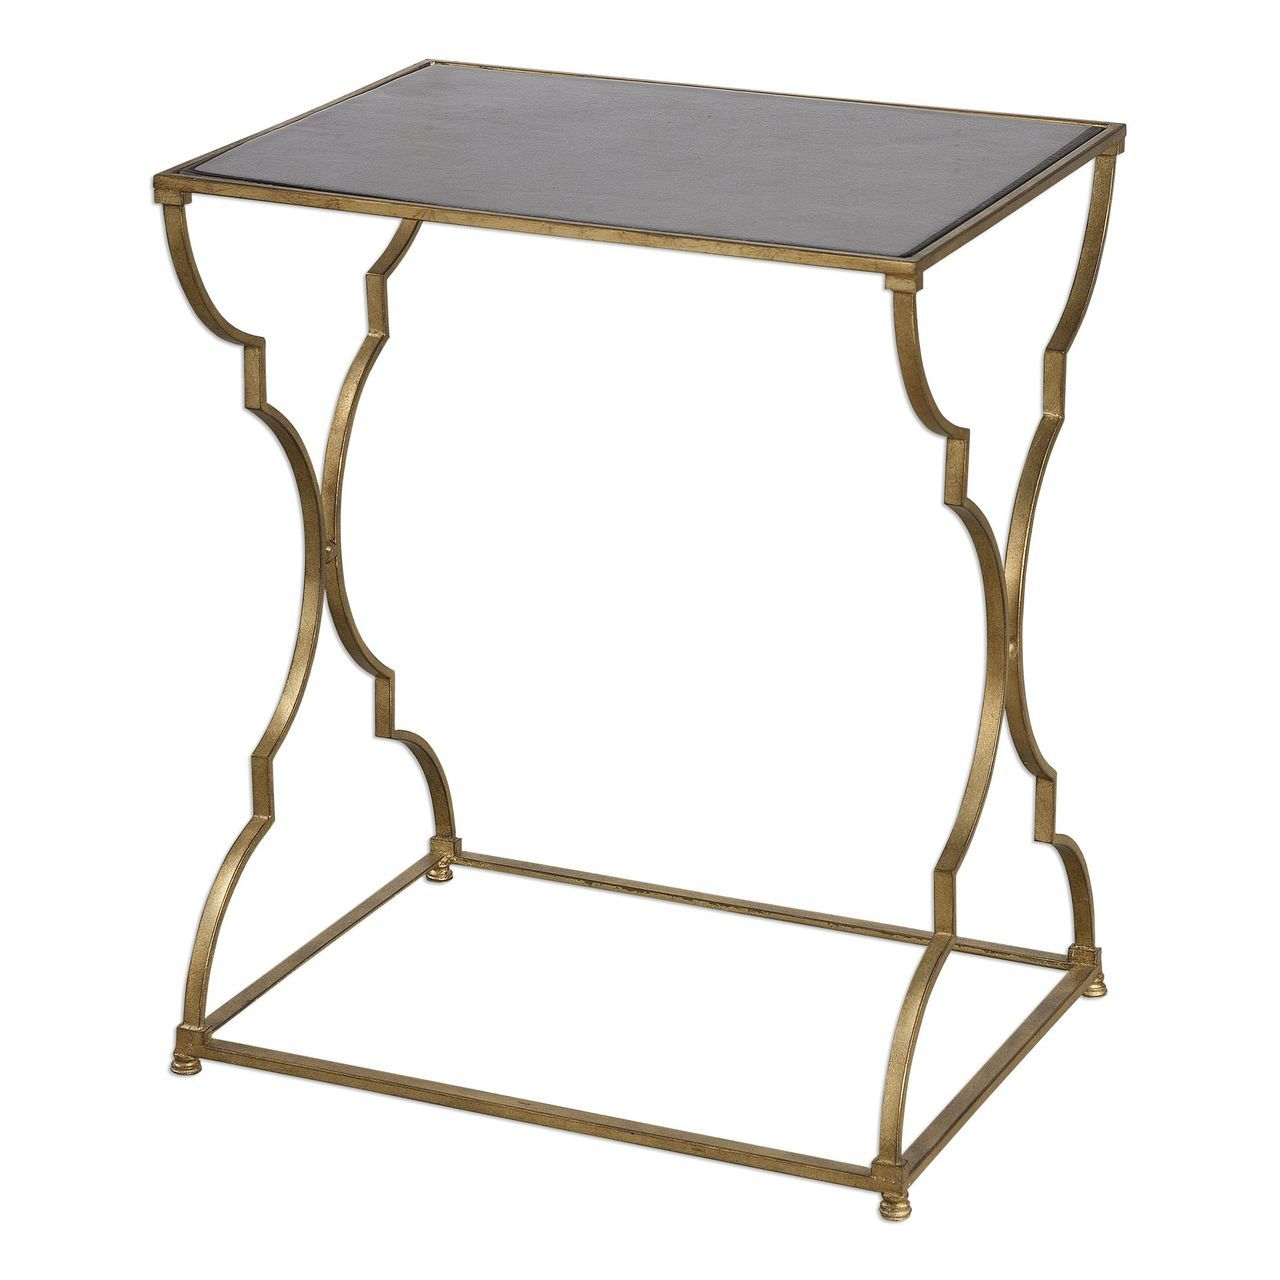 uttermost caitland antique gold accent table value brothers montrez nautical lights childrens and chairs target tiffany lighting direct sofa side with drawer farm dining bench